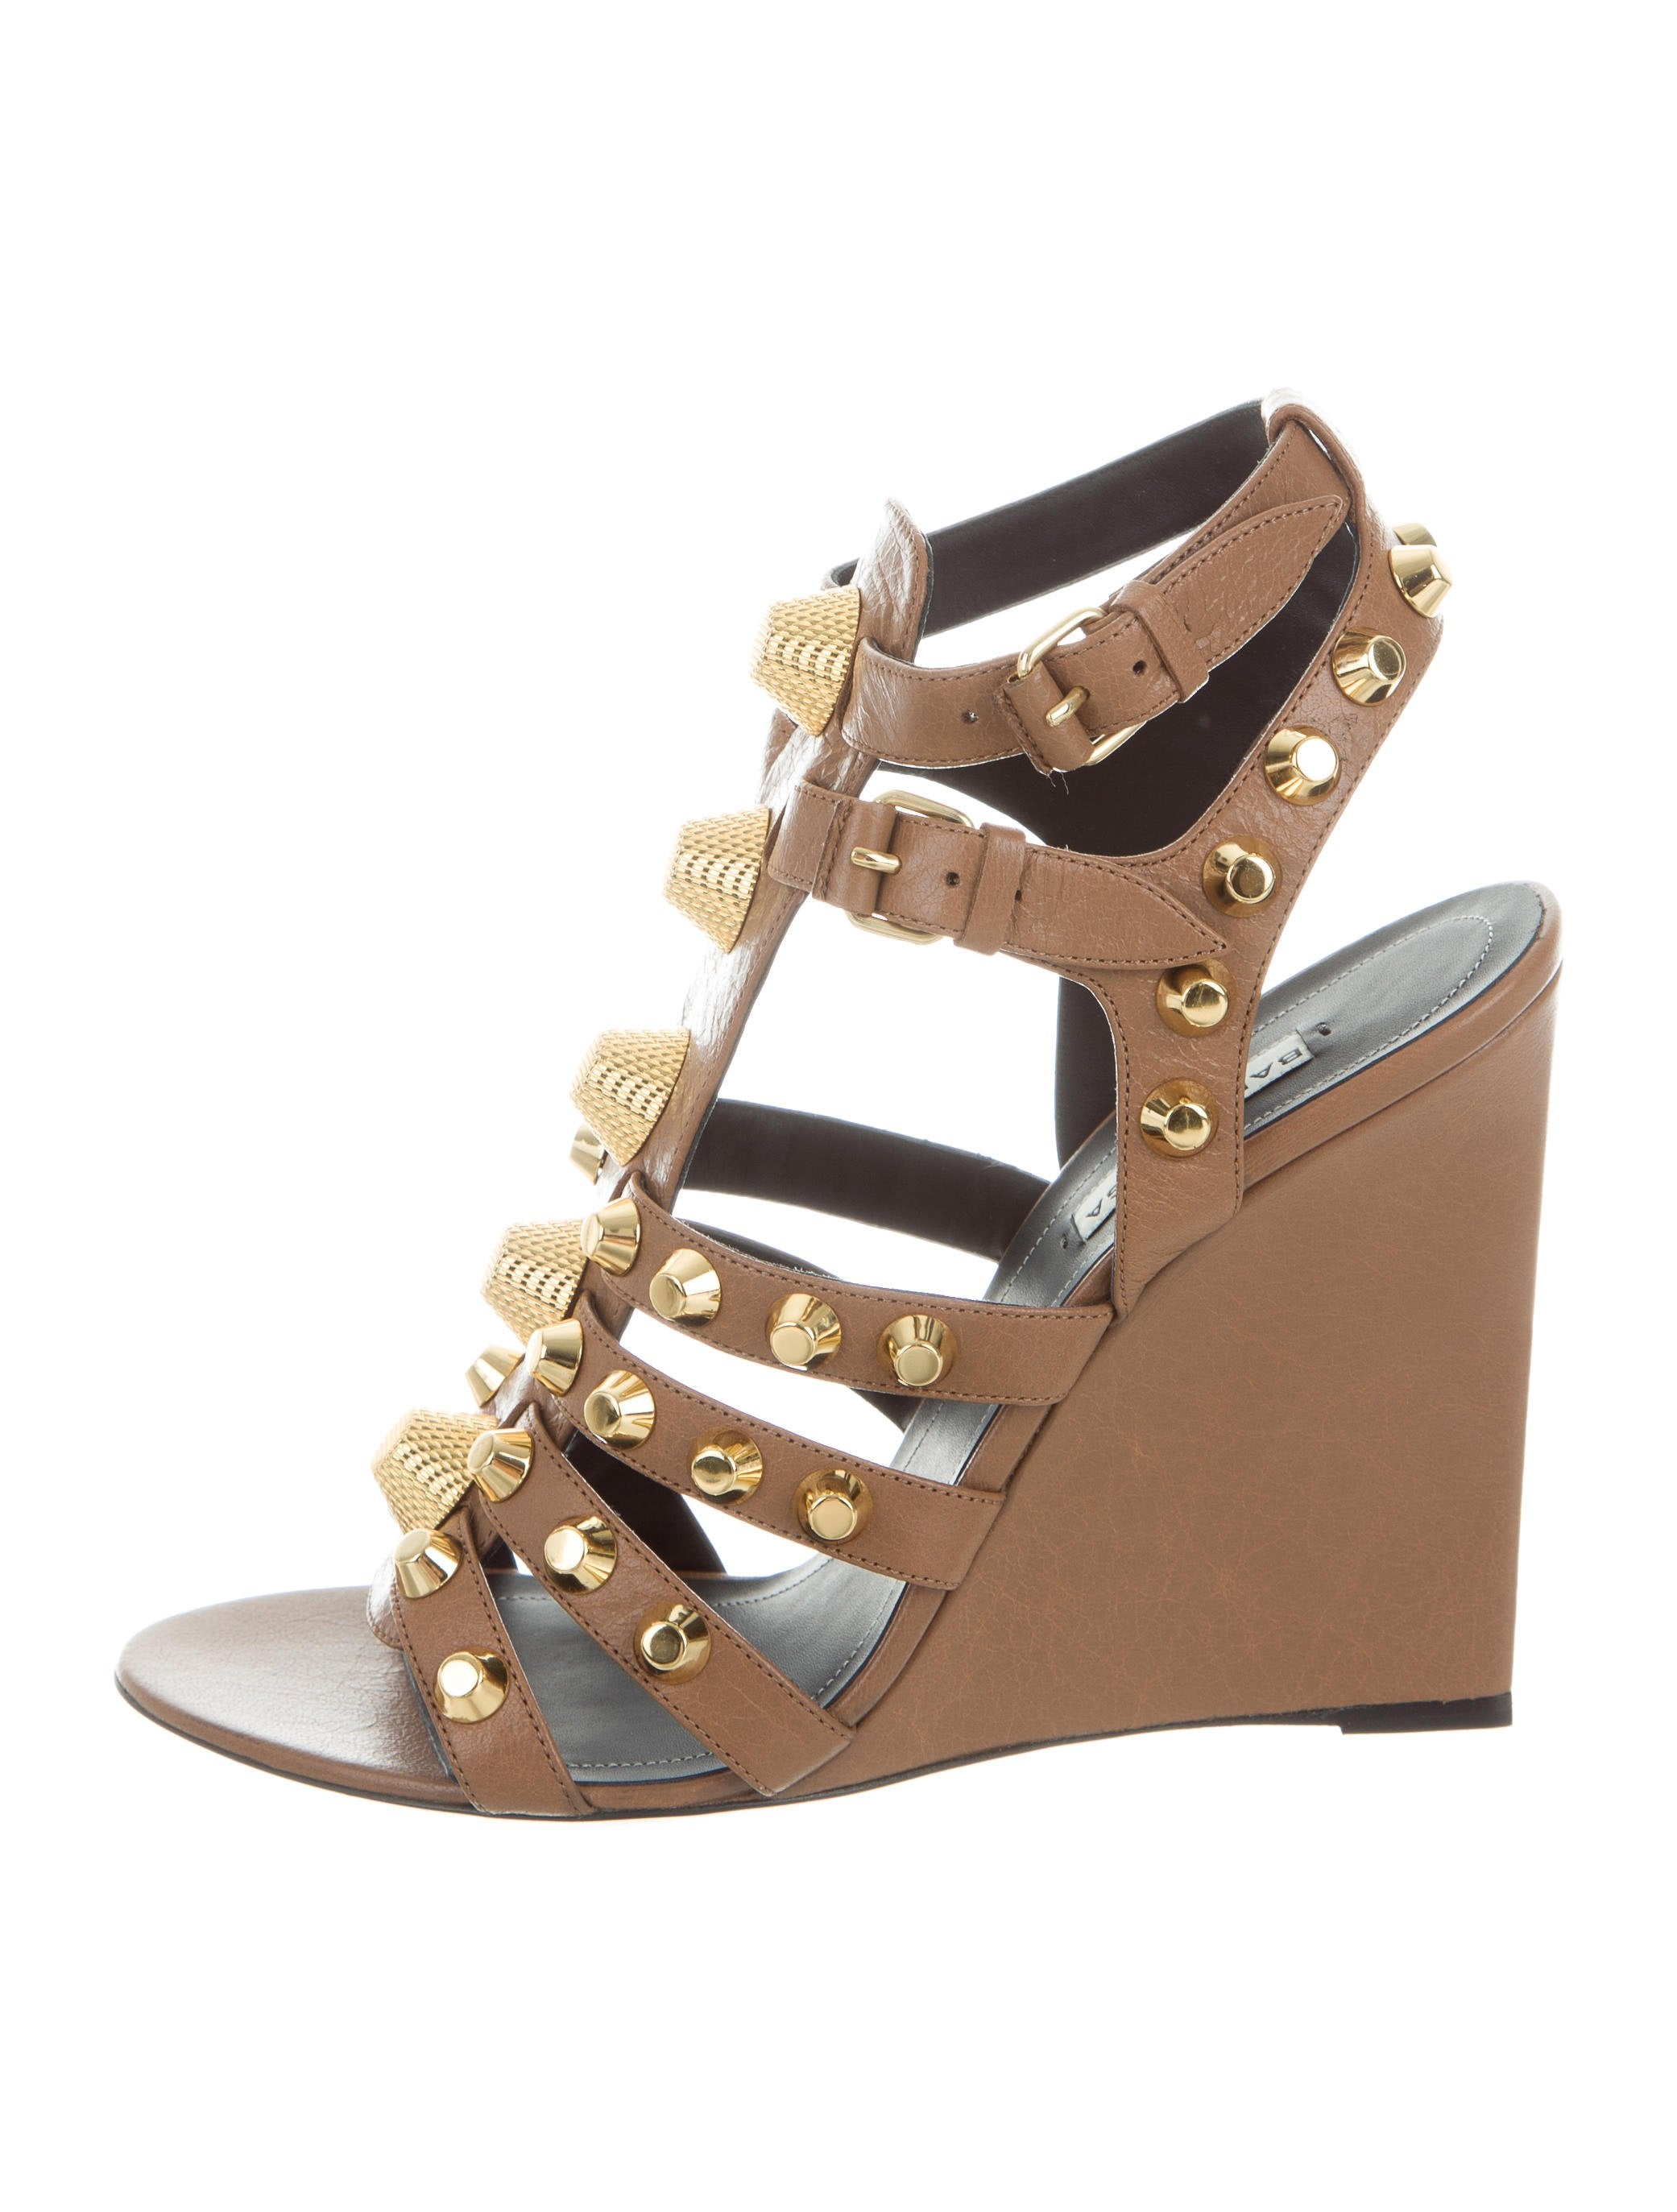 buy cheap visit outlet limited edition Balenciaga Studded Arena Wedges outlet with paypal order online SB433wp0v